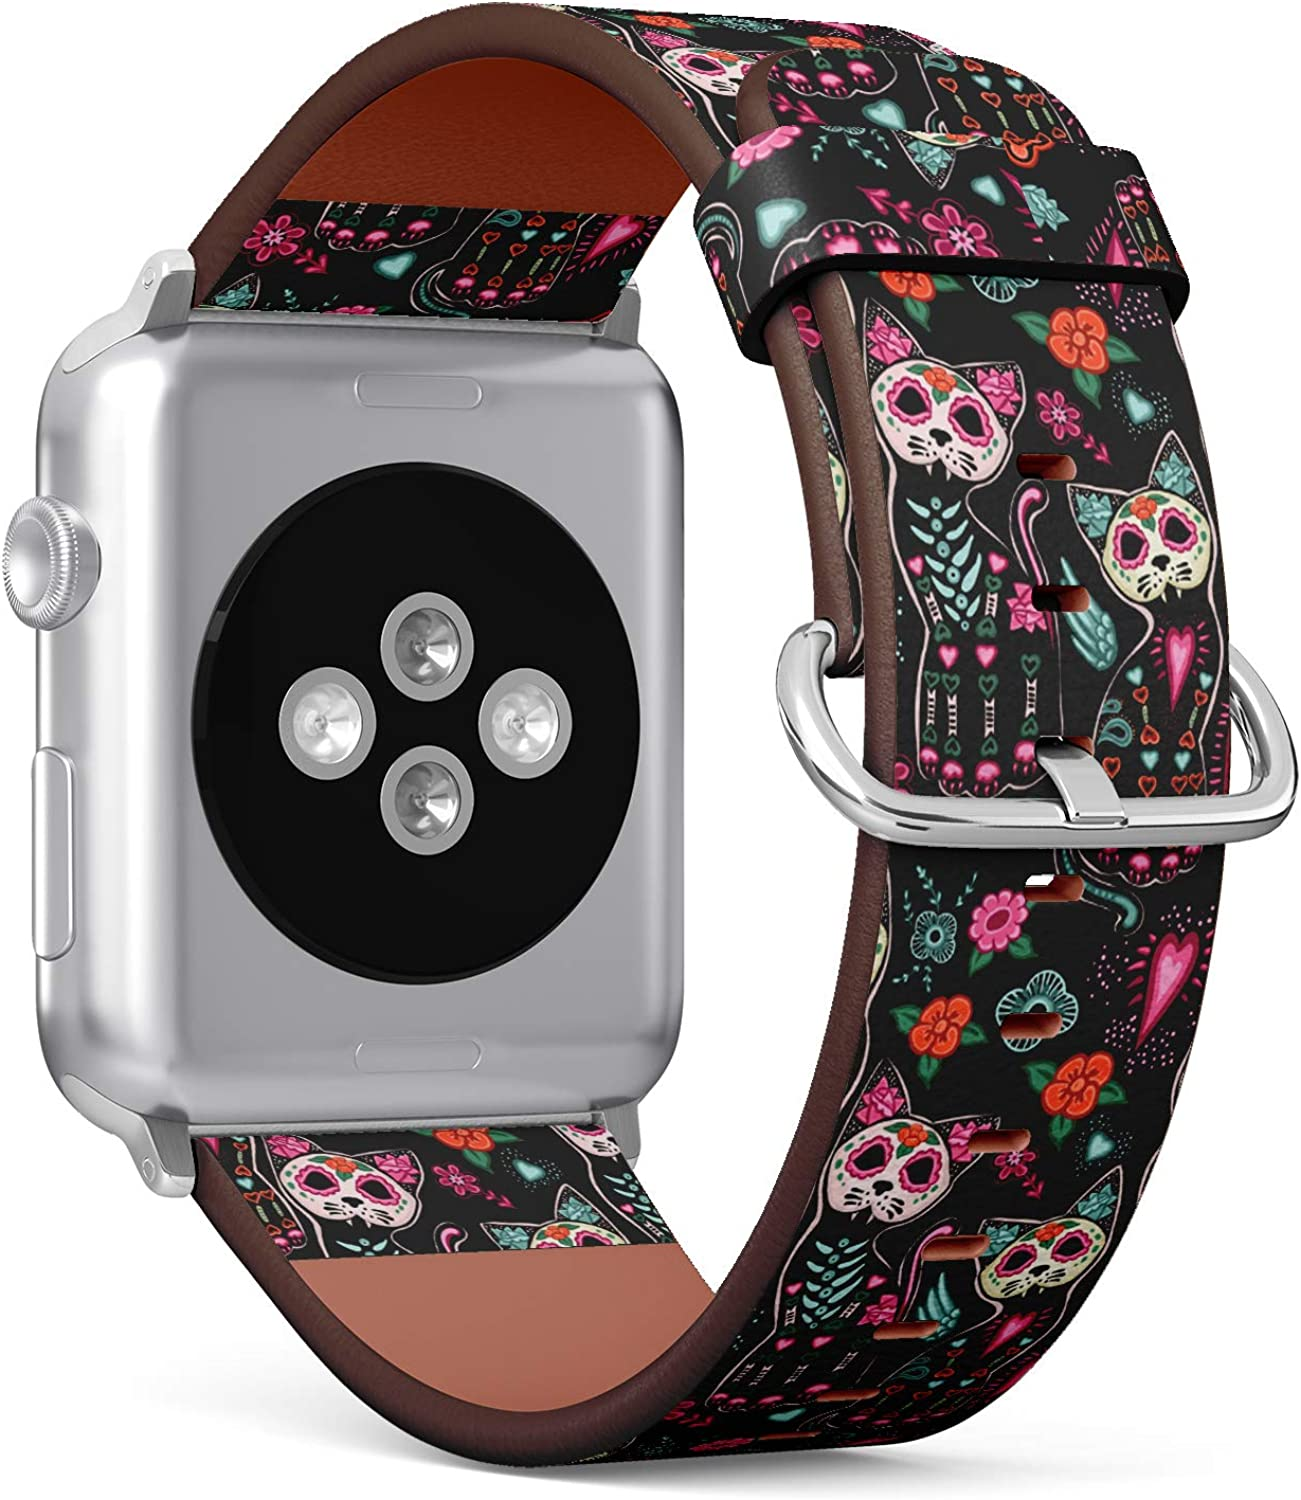 (Sugar Skull Cat Pattern for Day of The Dead) Patterned Leather Wristband Strap for Apple Watch Series 4/3/2/1 gen,Replacement for iWatch 38mm / 40mm Bands